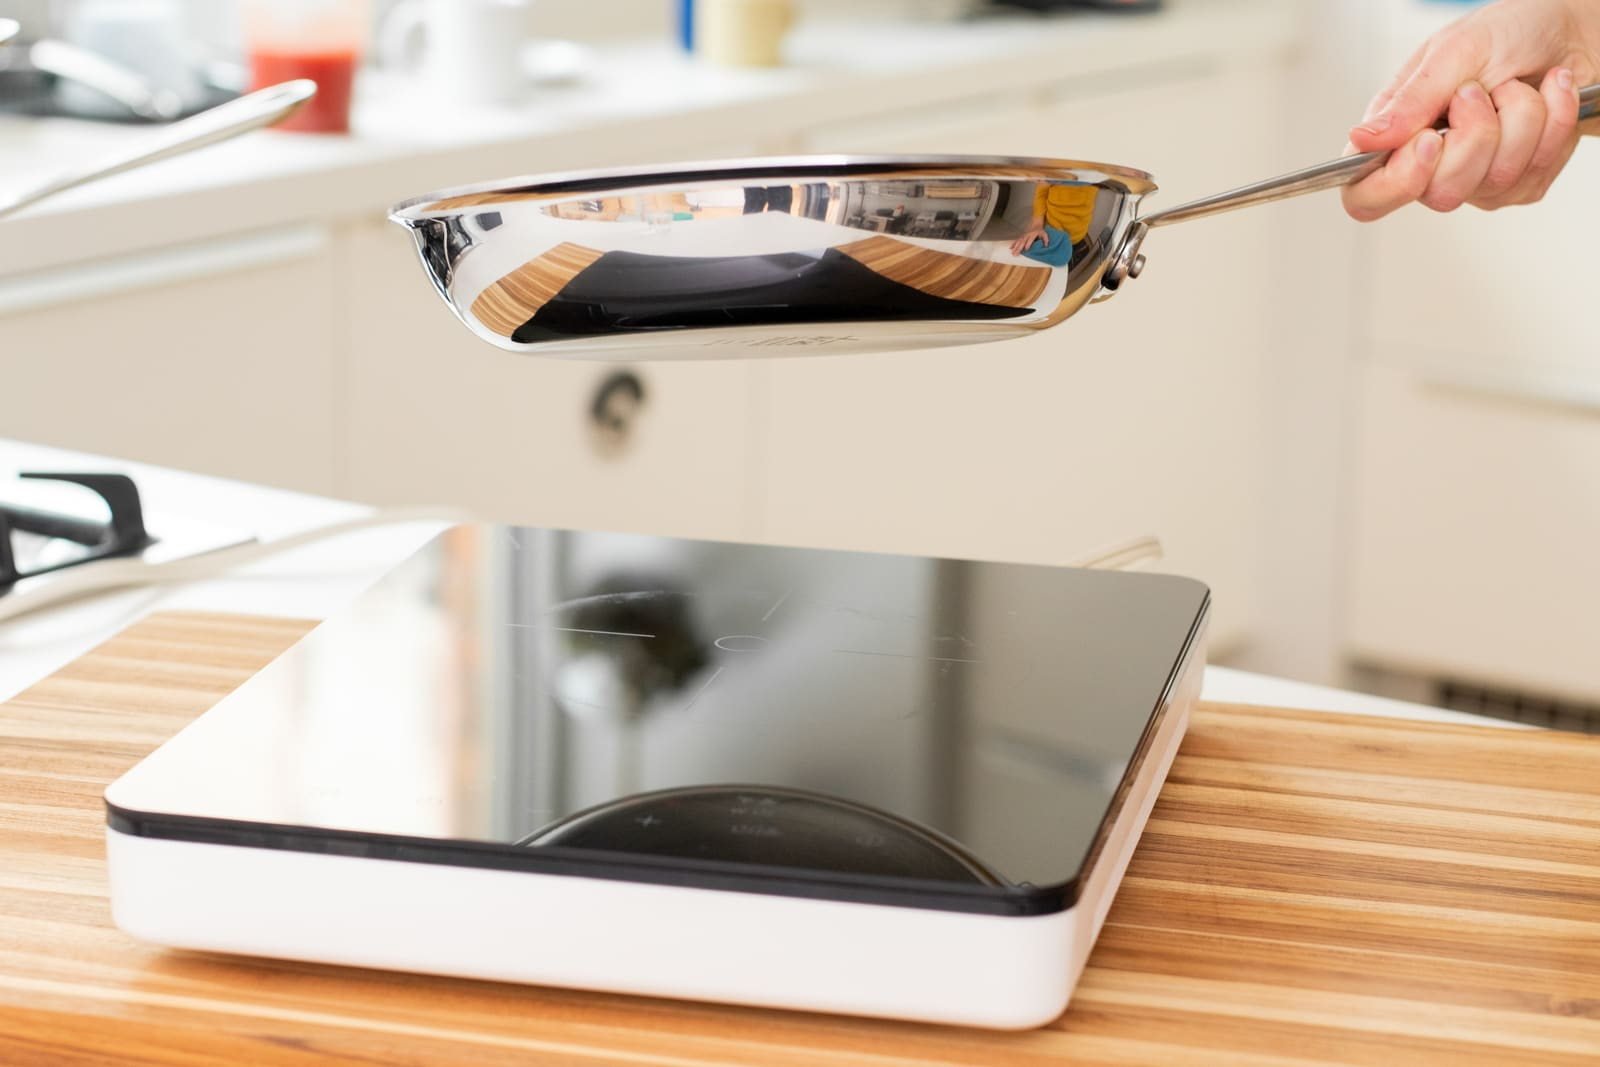 Portable induction cooktops